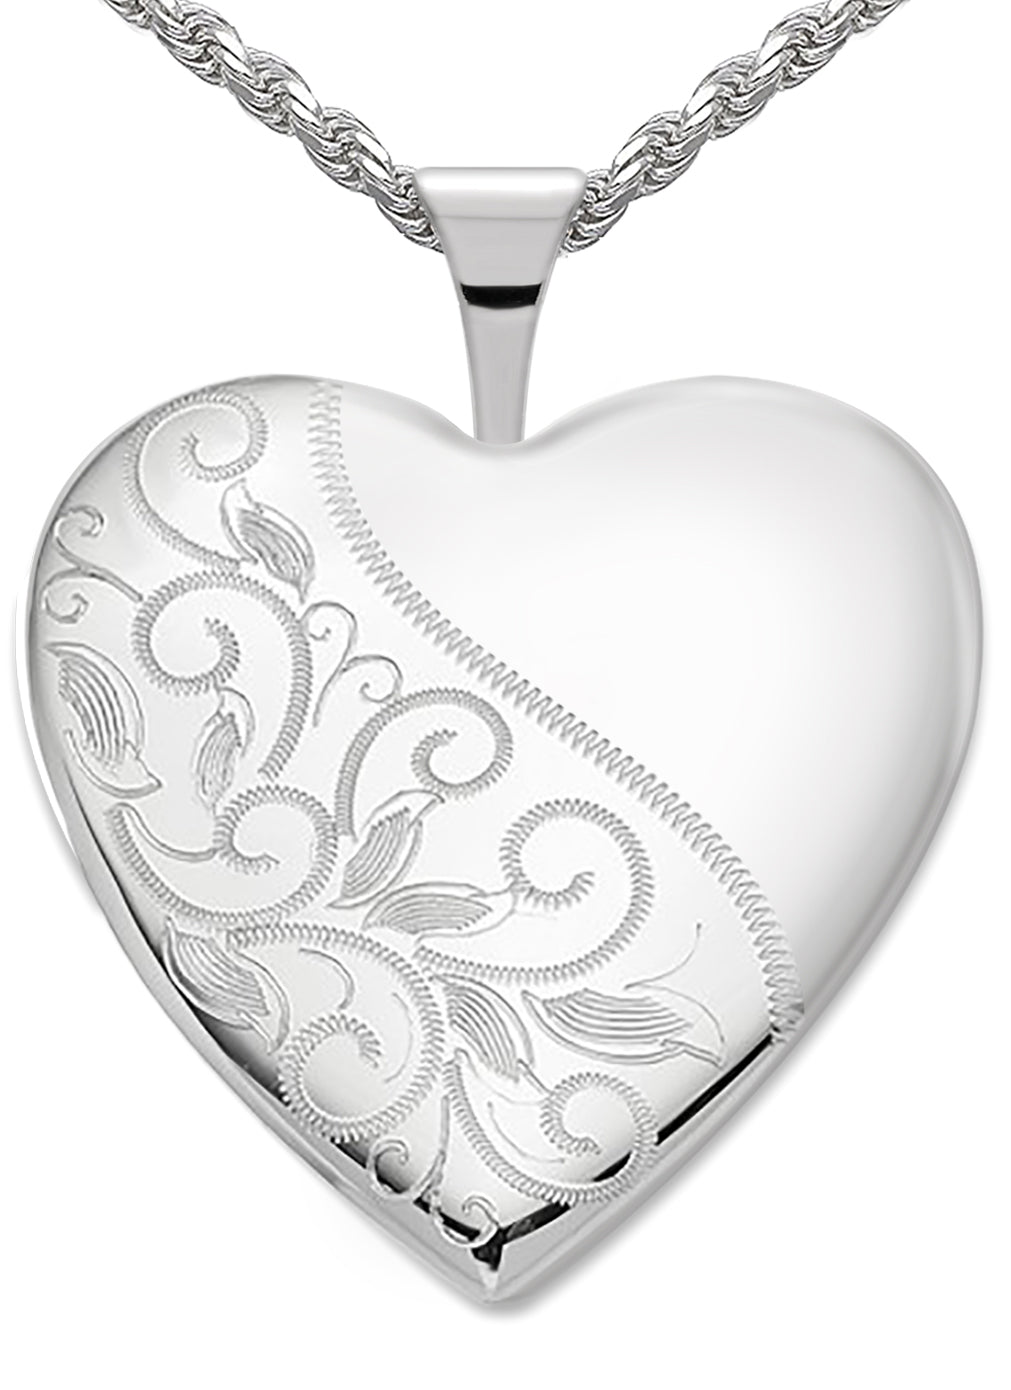 Heart Necklace - Silver Pendant In Swirl With 2 Photo